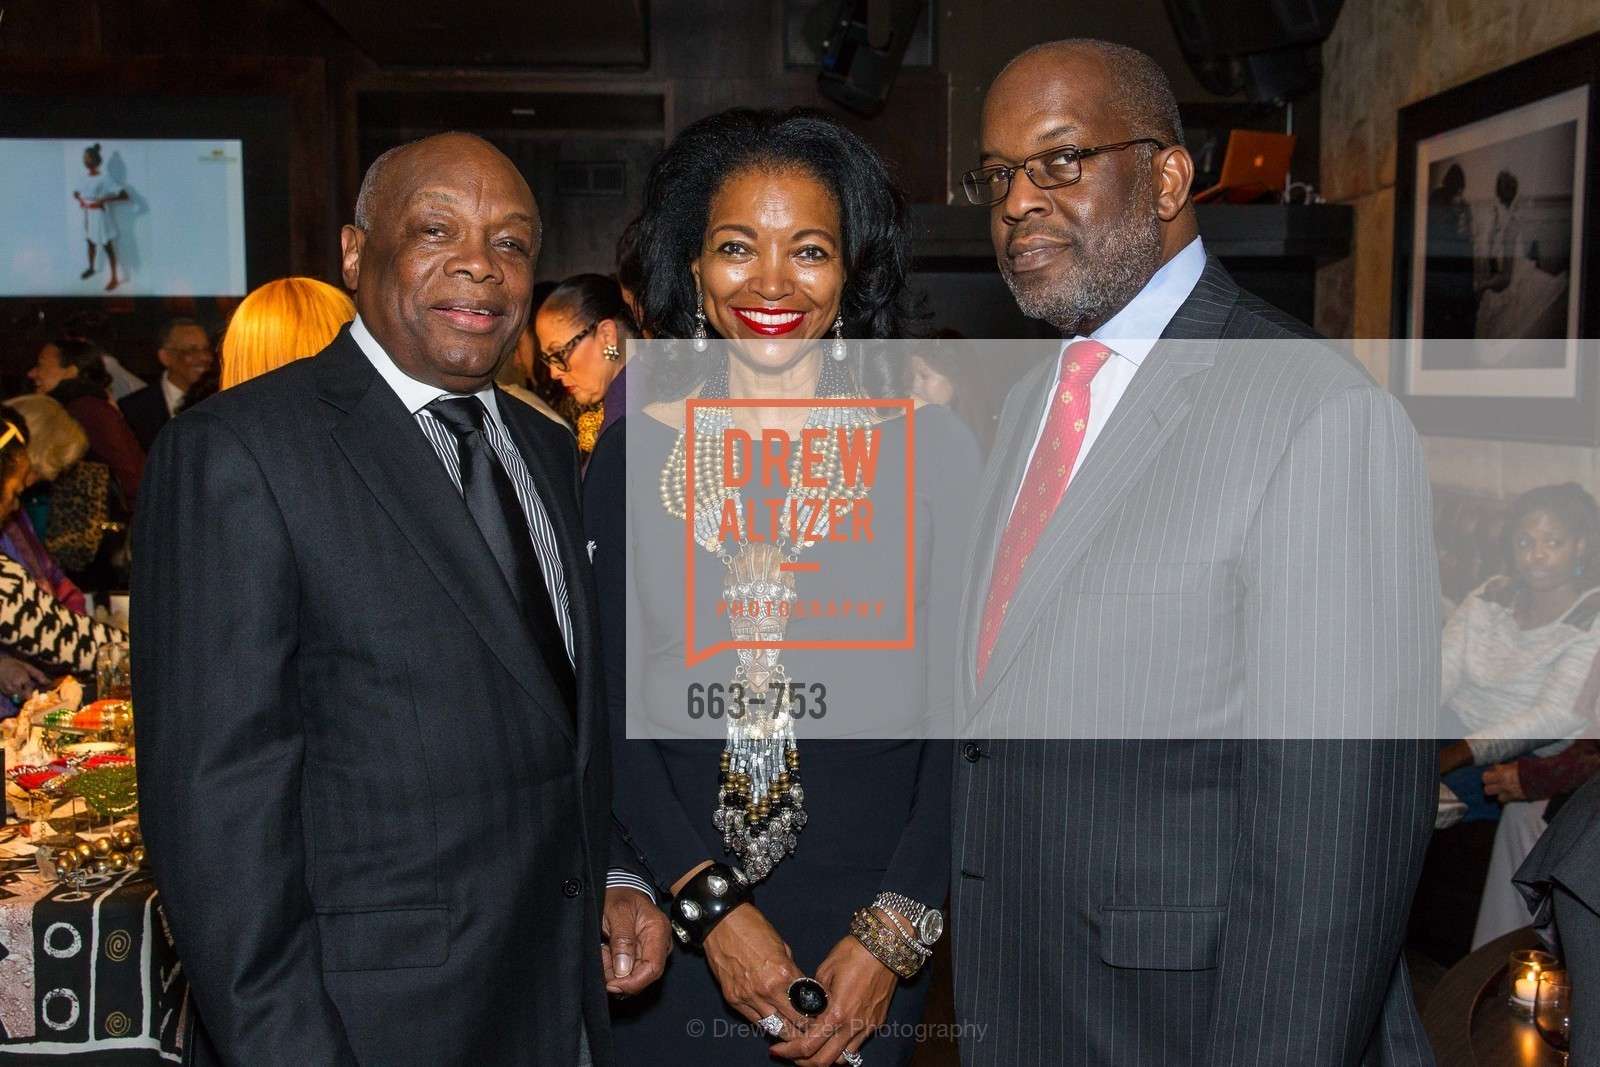 Willie Brown, Denise Bradley Tyson, Bernard Tyson, INSPIRED LUXE Launch Party Hosted by Denise Bradley Tyson, US, Matrix Fillmore, May 28th, 2015,Drew Altizer, Drew Altizer Photography, full-service agency, private events, San Francisco photographer, photographer california